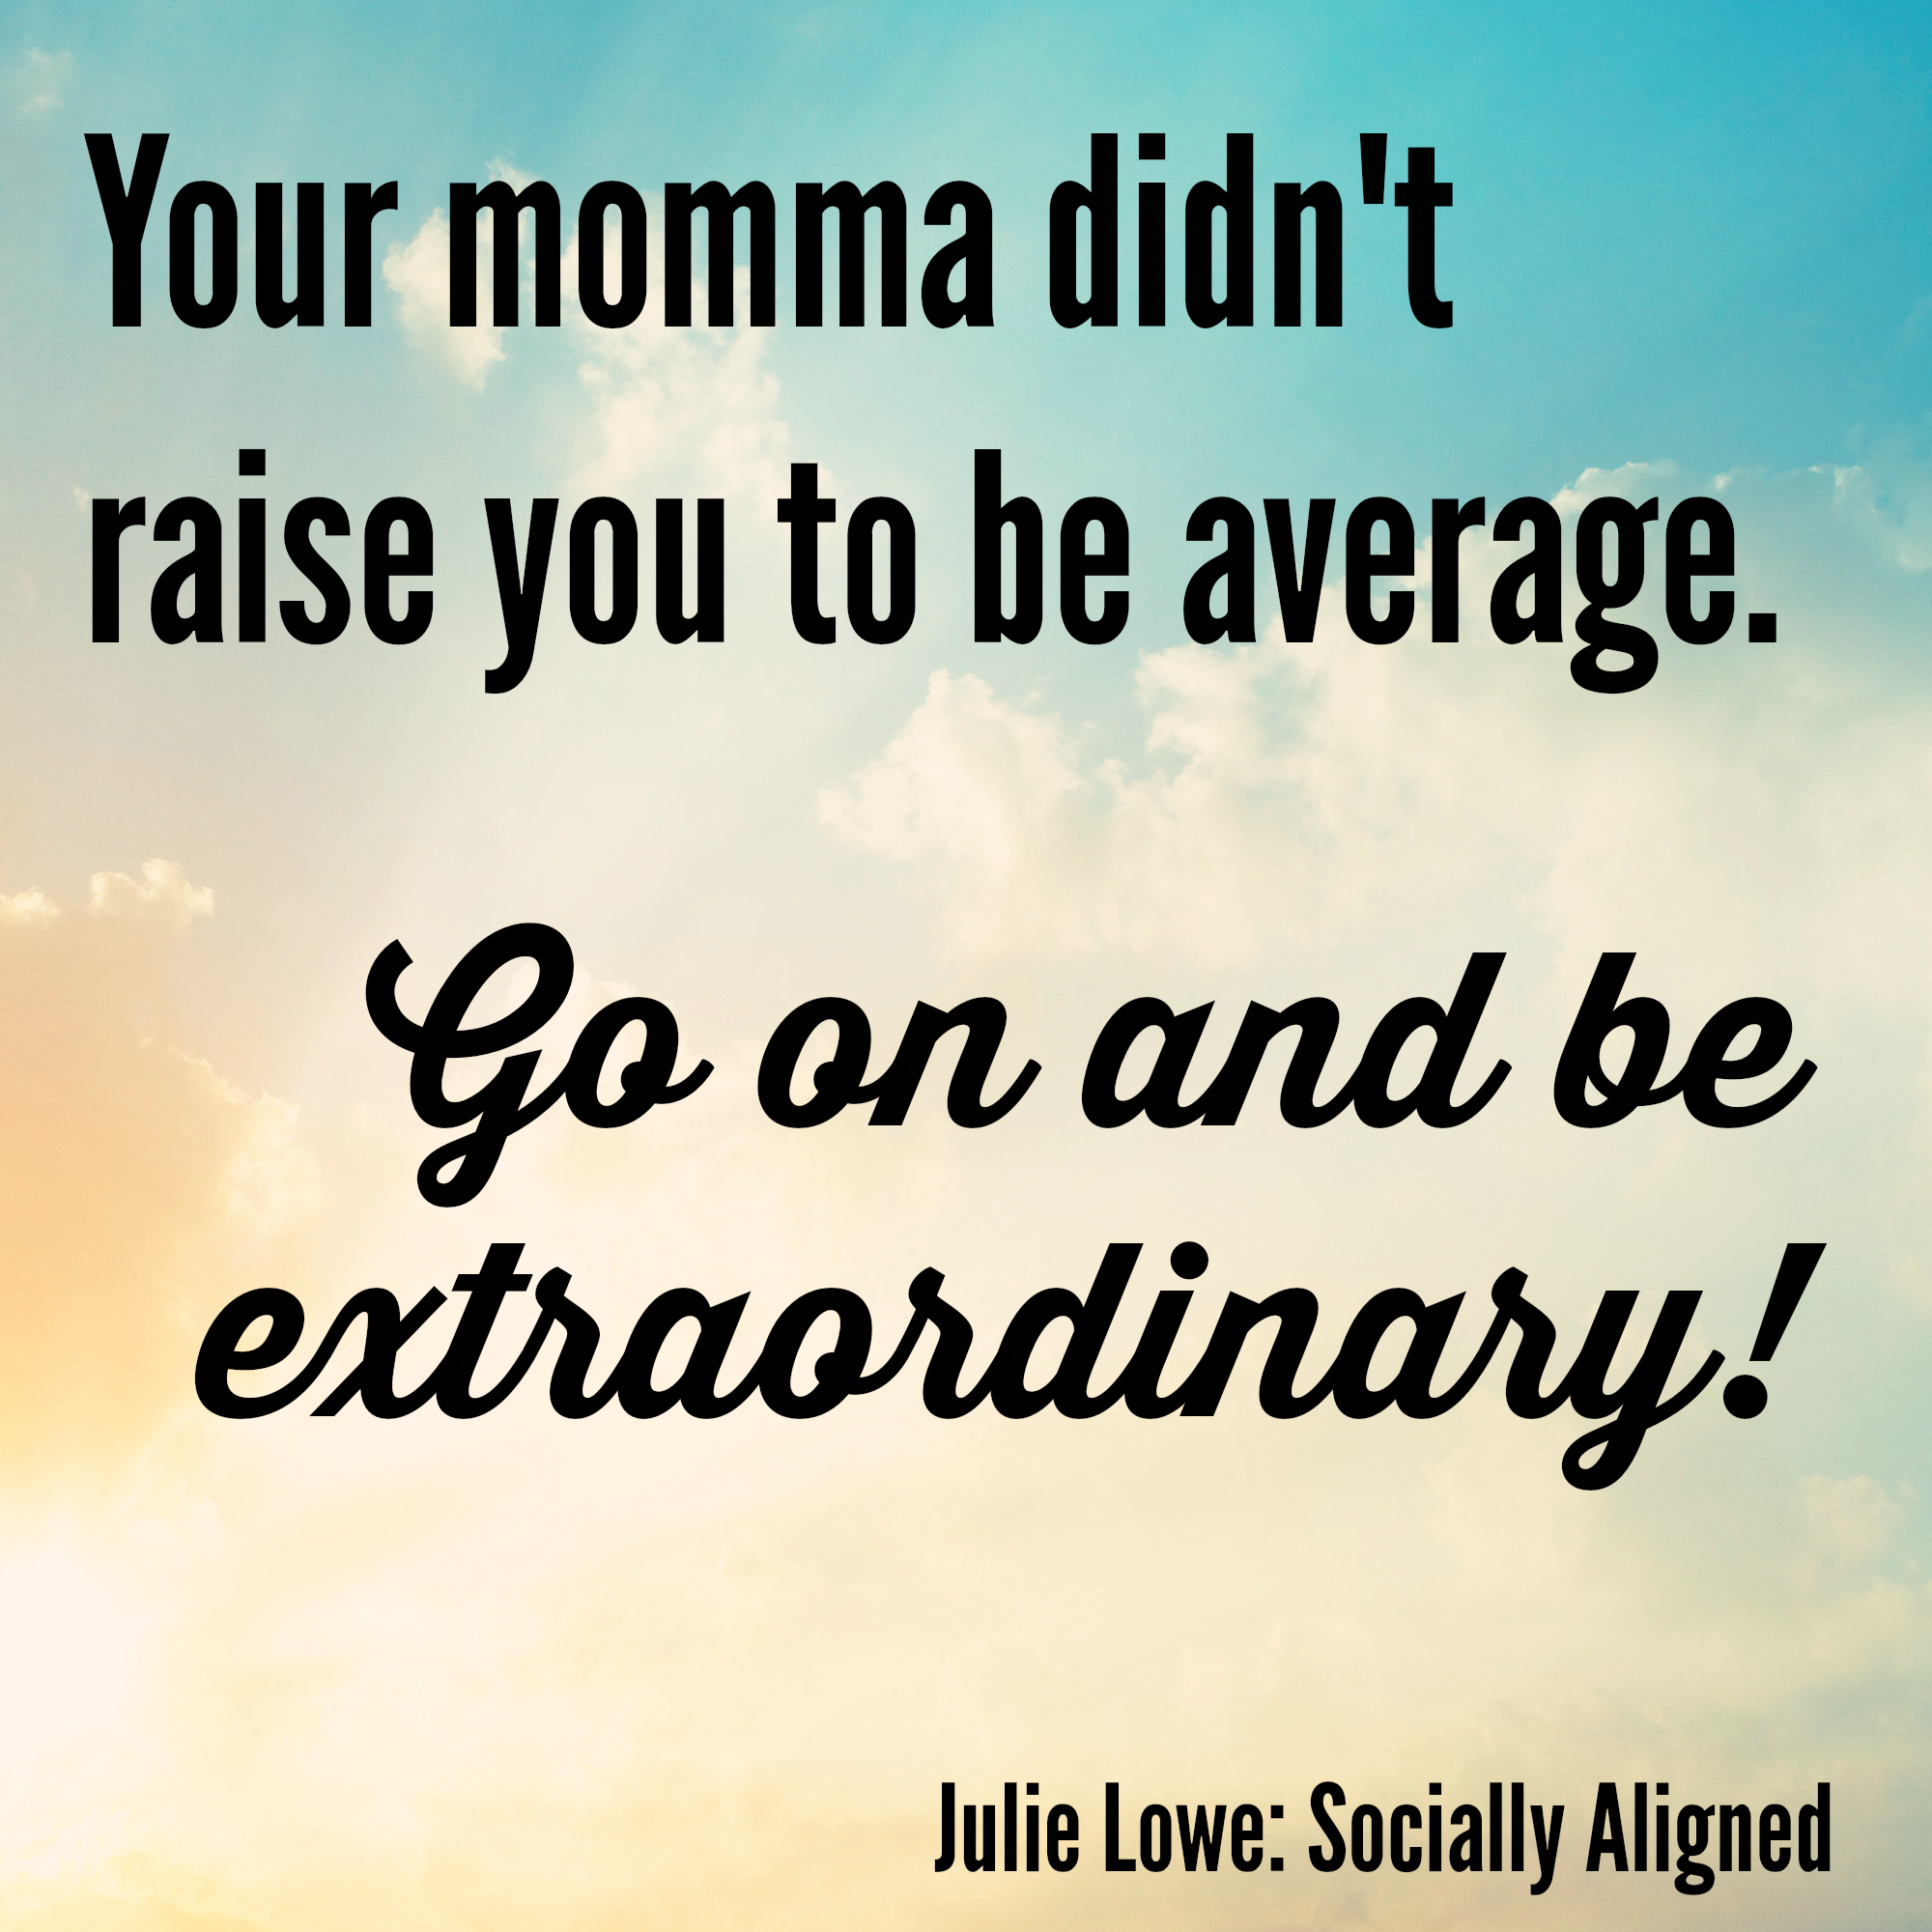 Make Your Mom Proud Quotes: Here's A Thought For You On Mother's Day. Your Mom Didn't